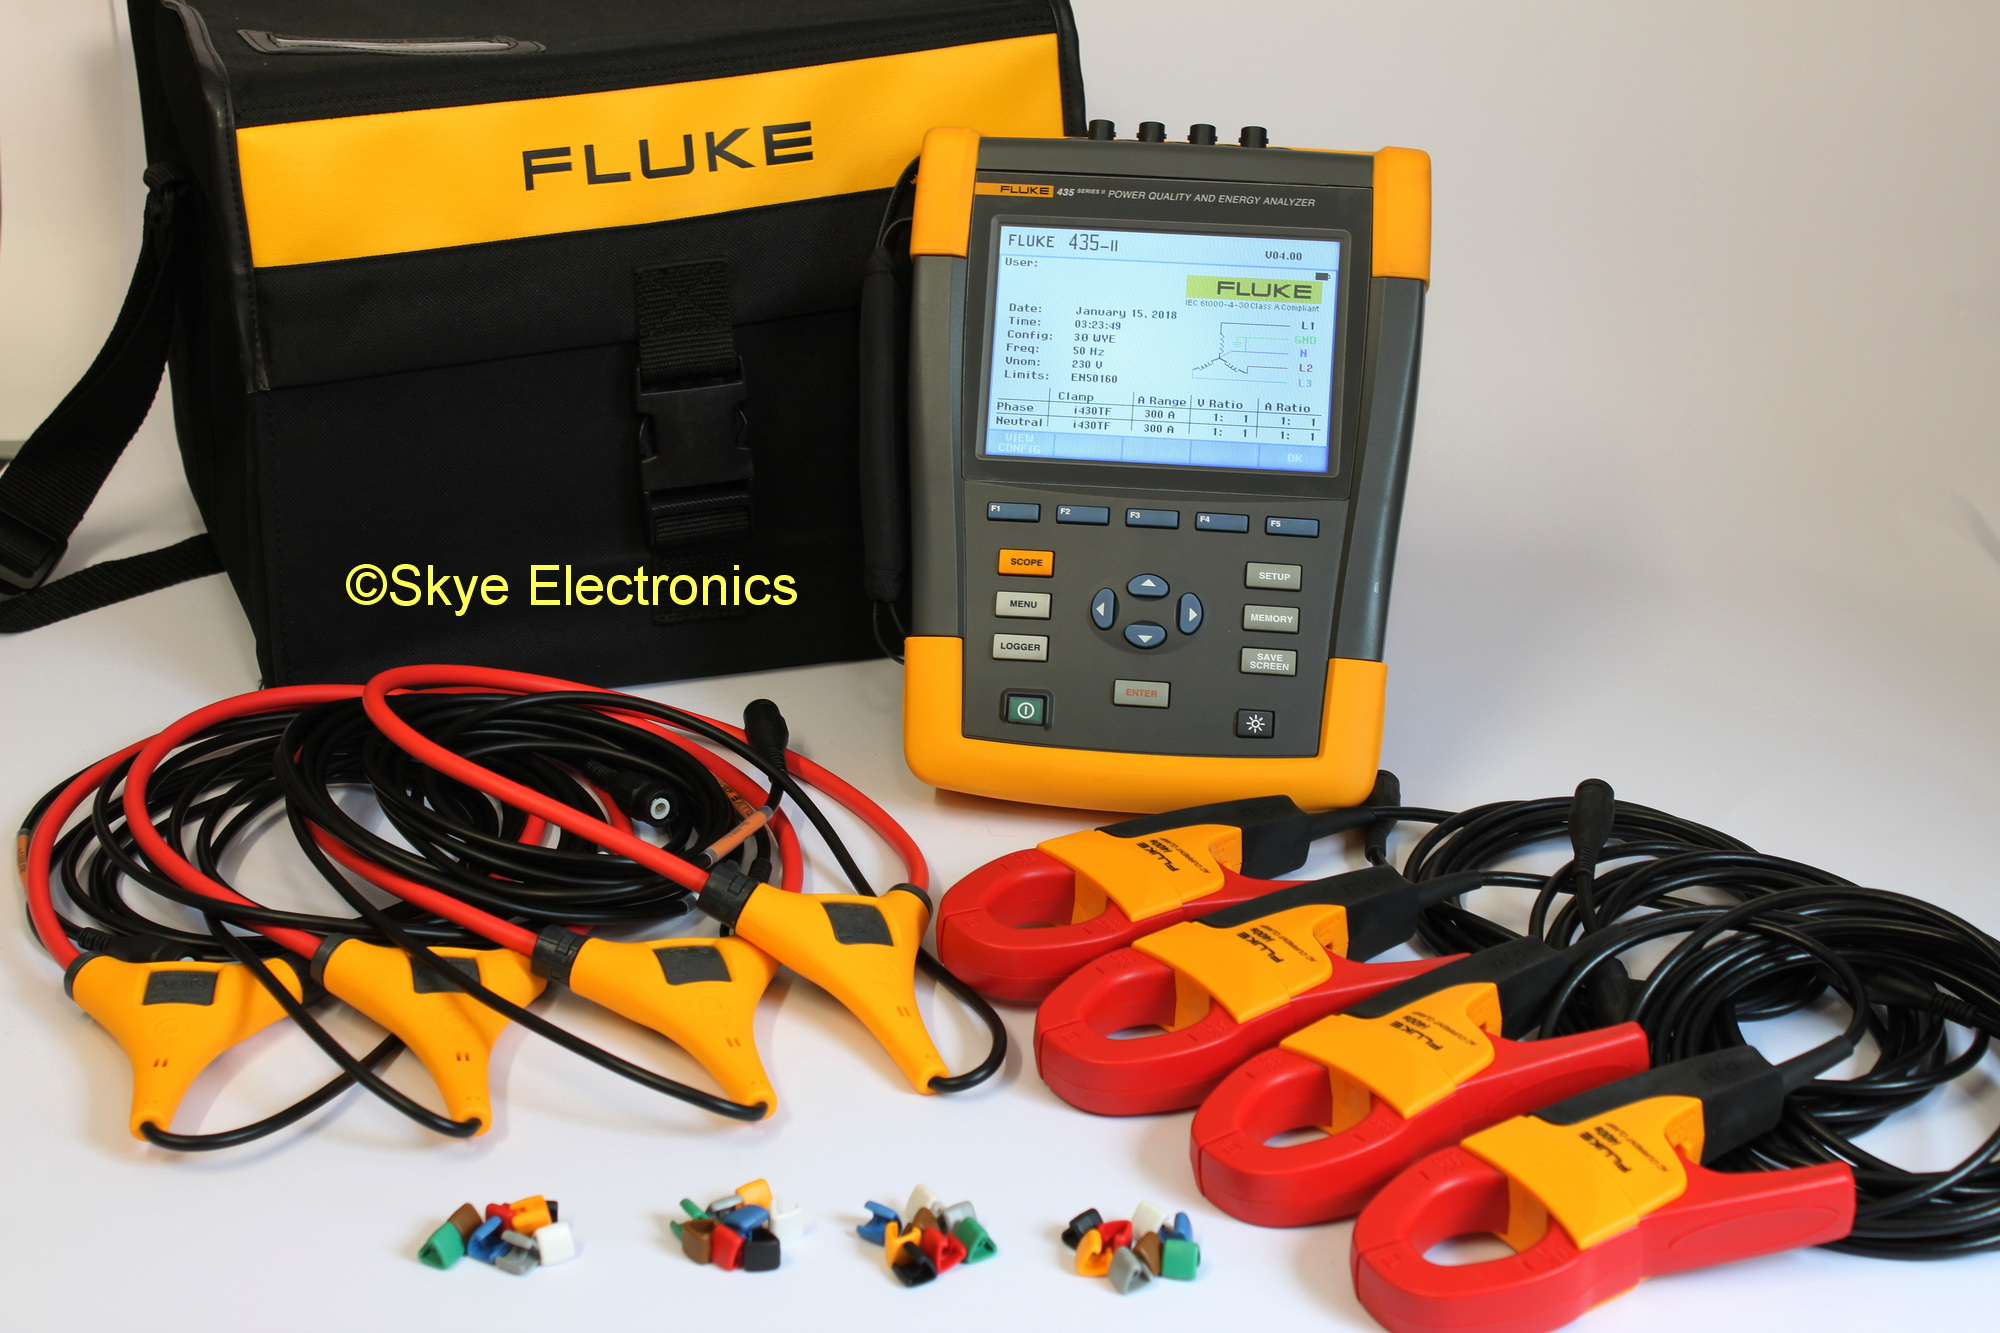 Fluke 435 Series Ii Skye Electronics The Netherlands